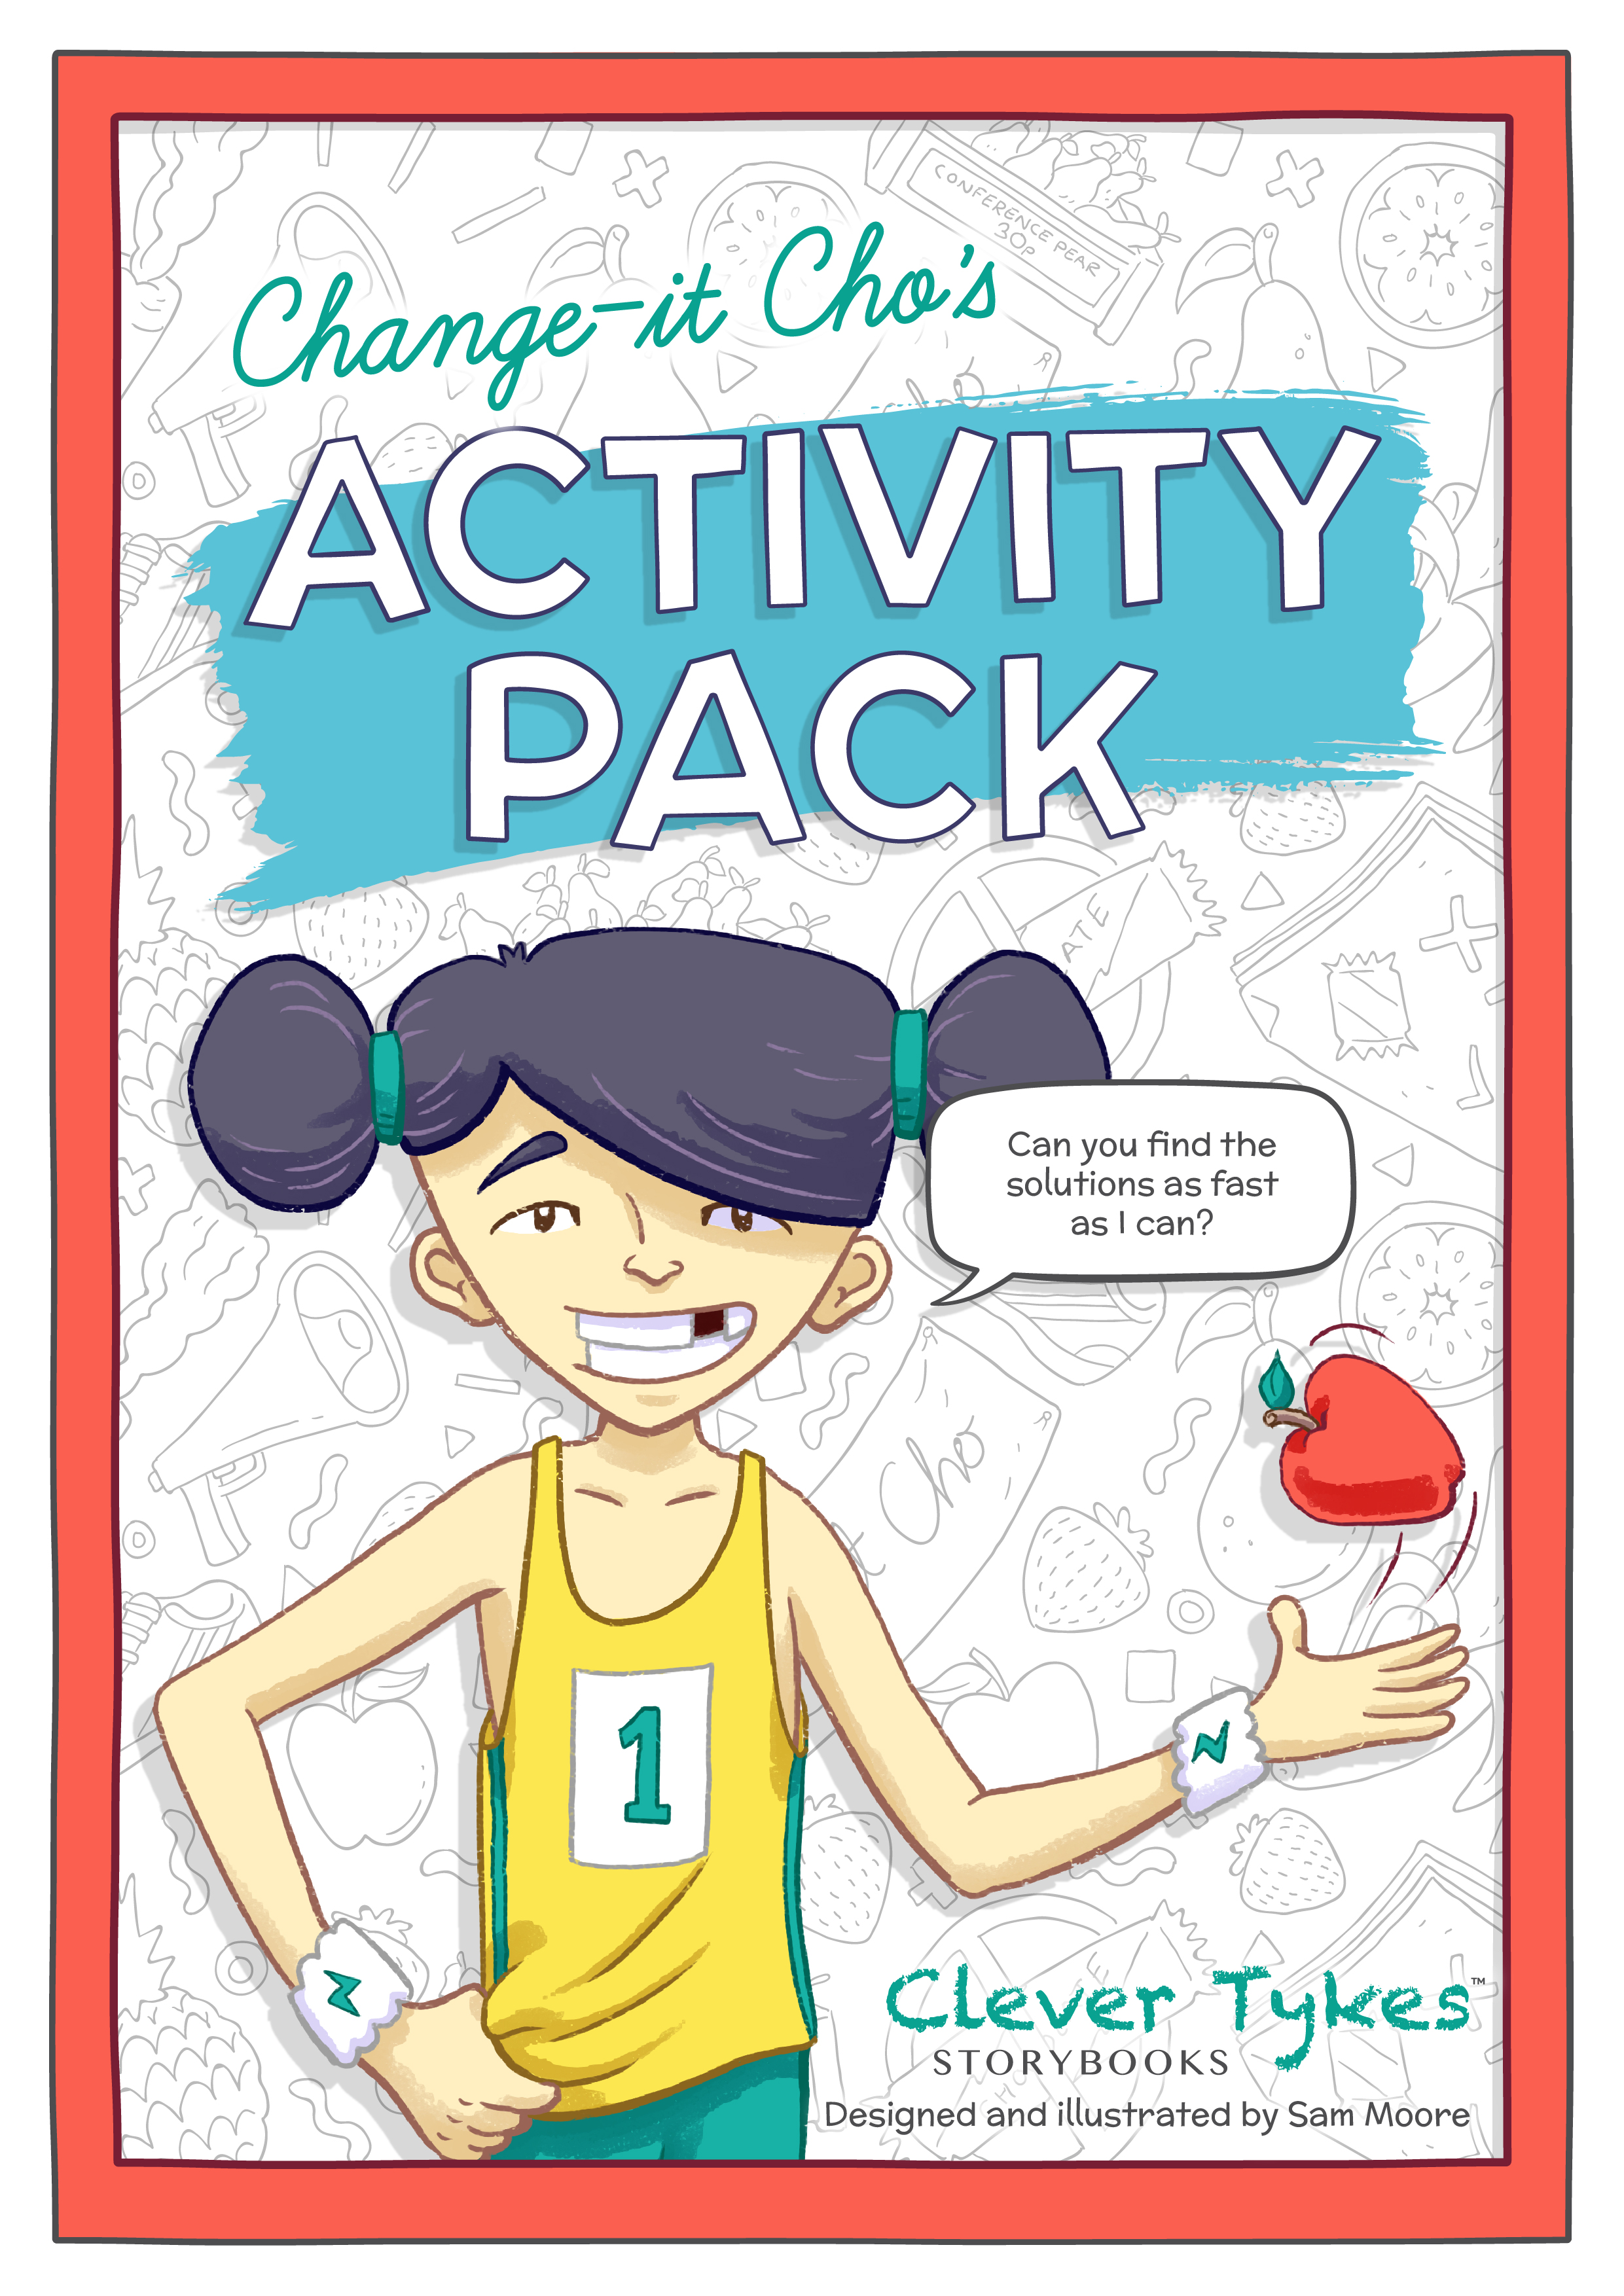 Printable Change-it Cho activity pack - Clever Tykes